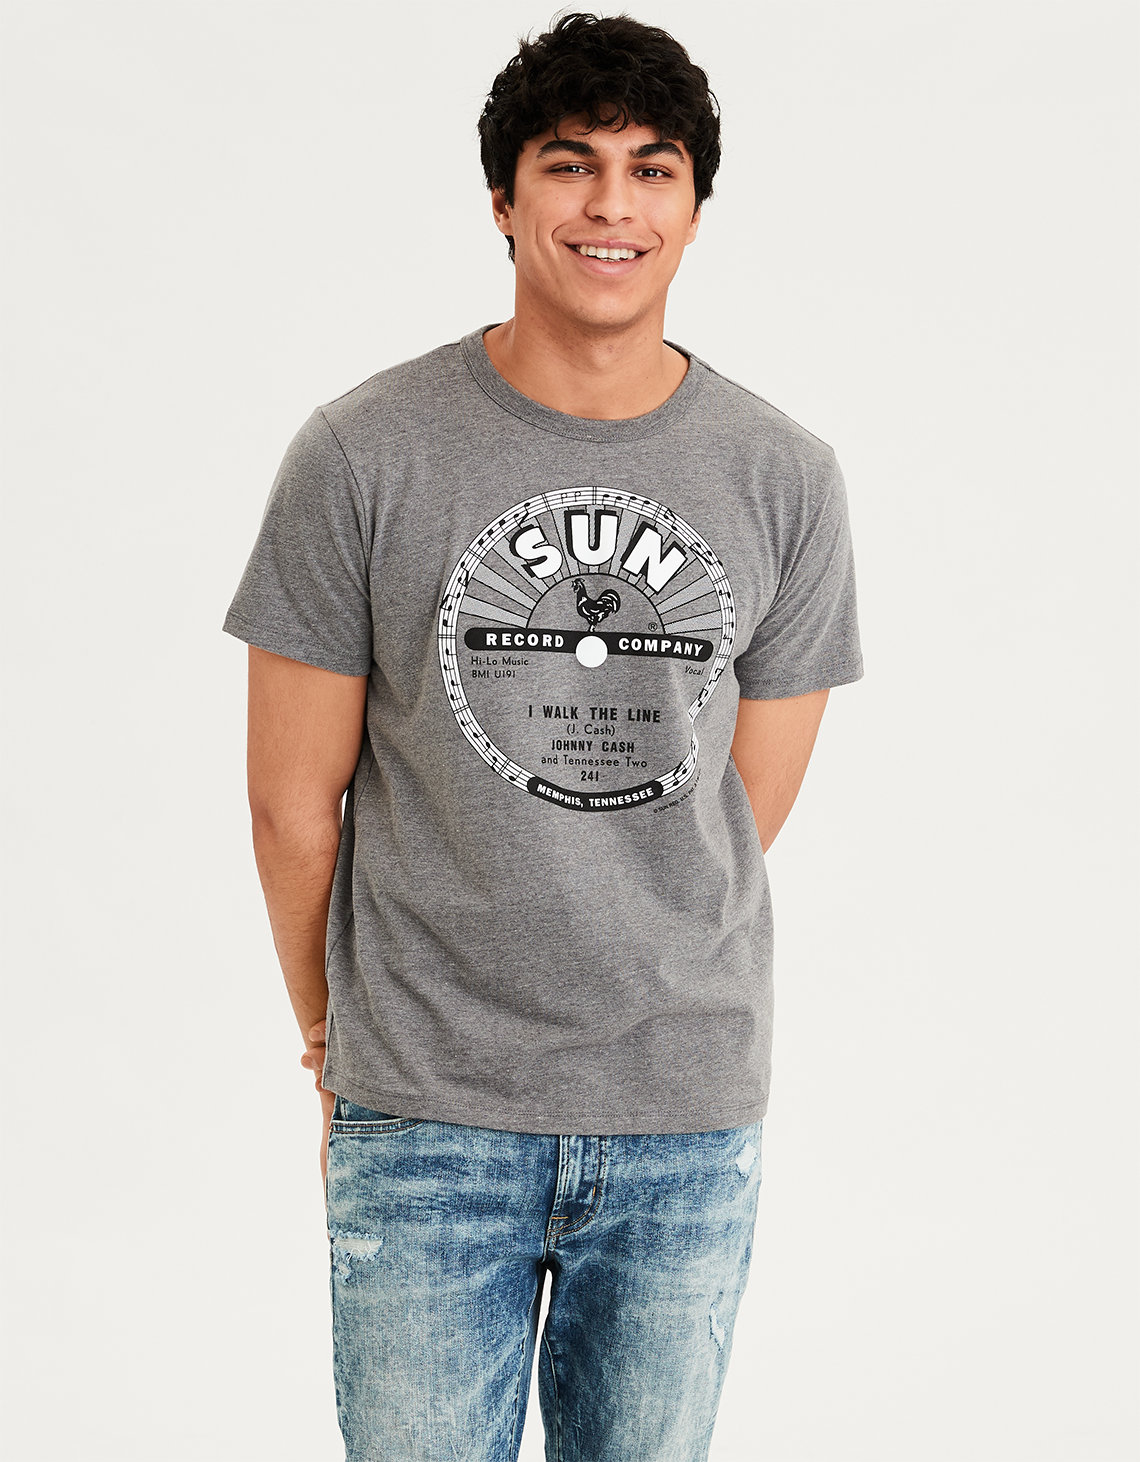 4a41b07f AE Sun Records Graphic Tee. Placeholder image. Product Image